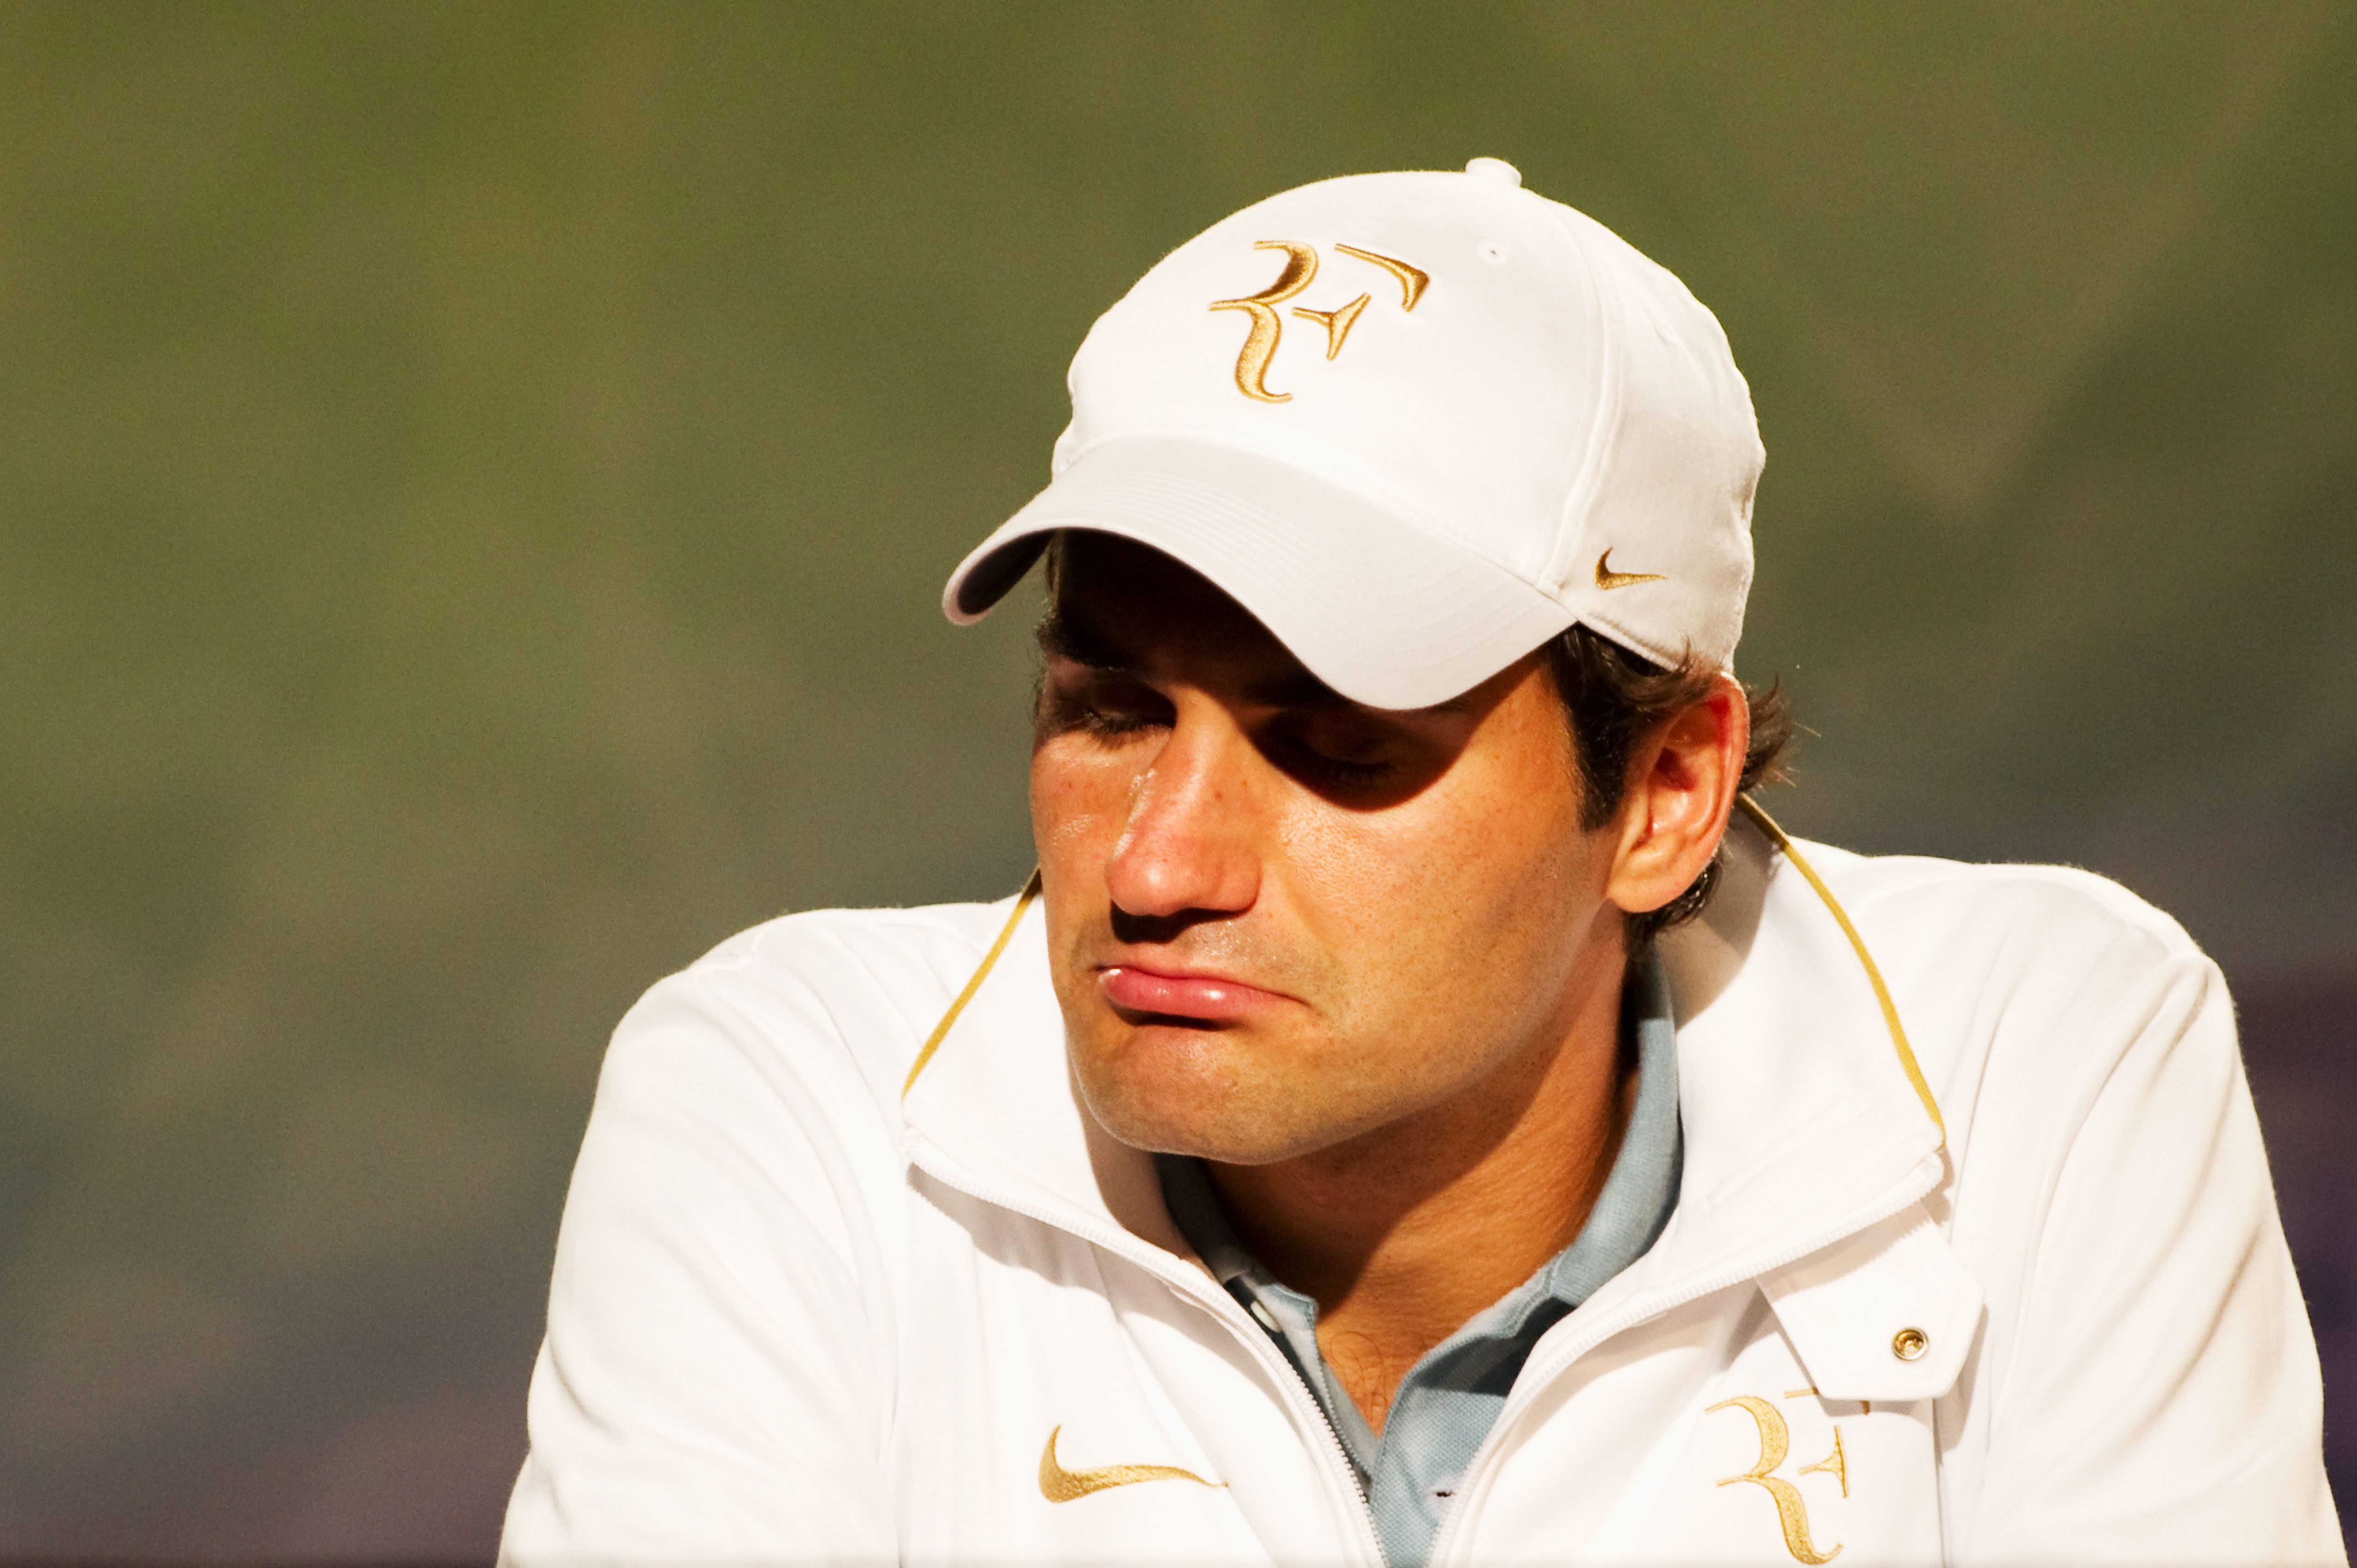 LONDON, ENGLAND - JUNE 30:  Roger Federer of Switzerland speaks during a press conference on Day Nine of the Wimbledon Lawn Tennis Championships at the All England Lawn Tennis and Croquet Club on June 30, 2010 in London, England.  (Photo by Tom Lovelock-P